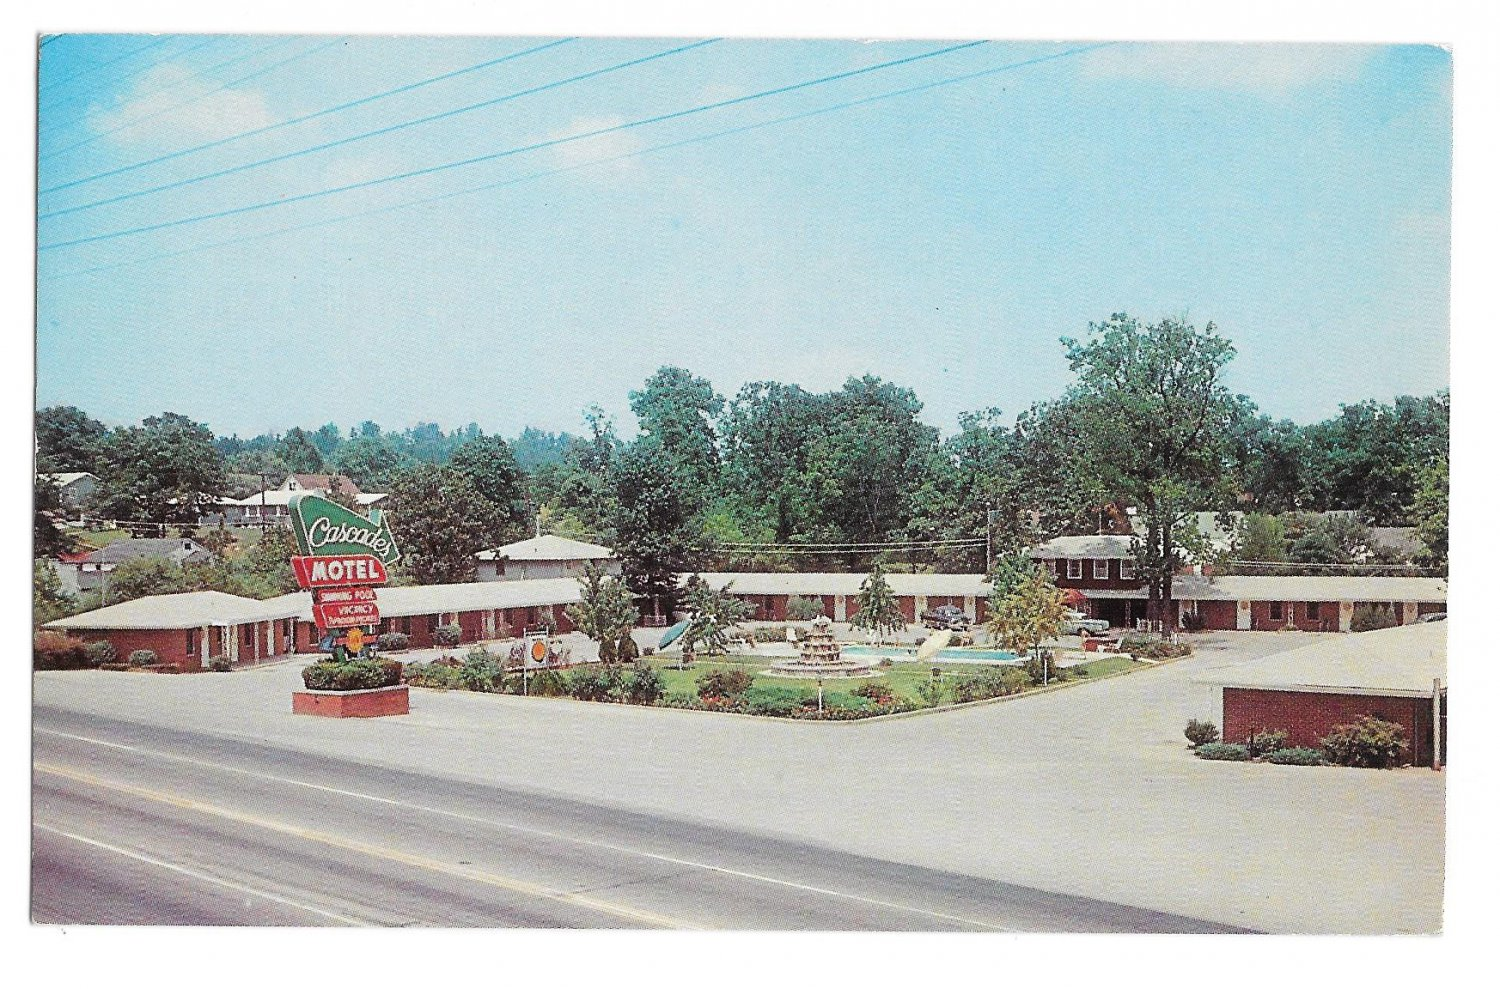 Cascades Motel Chattanooga TN US Hwy 41 Mr and Mrs TC Barrett Mgrs 1962 Vintage Postcard